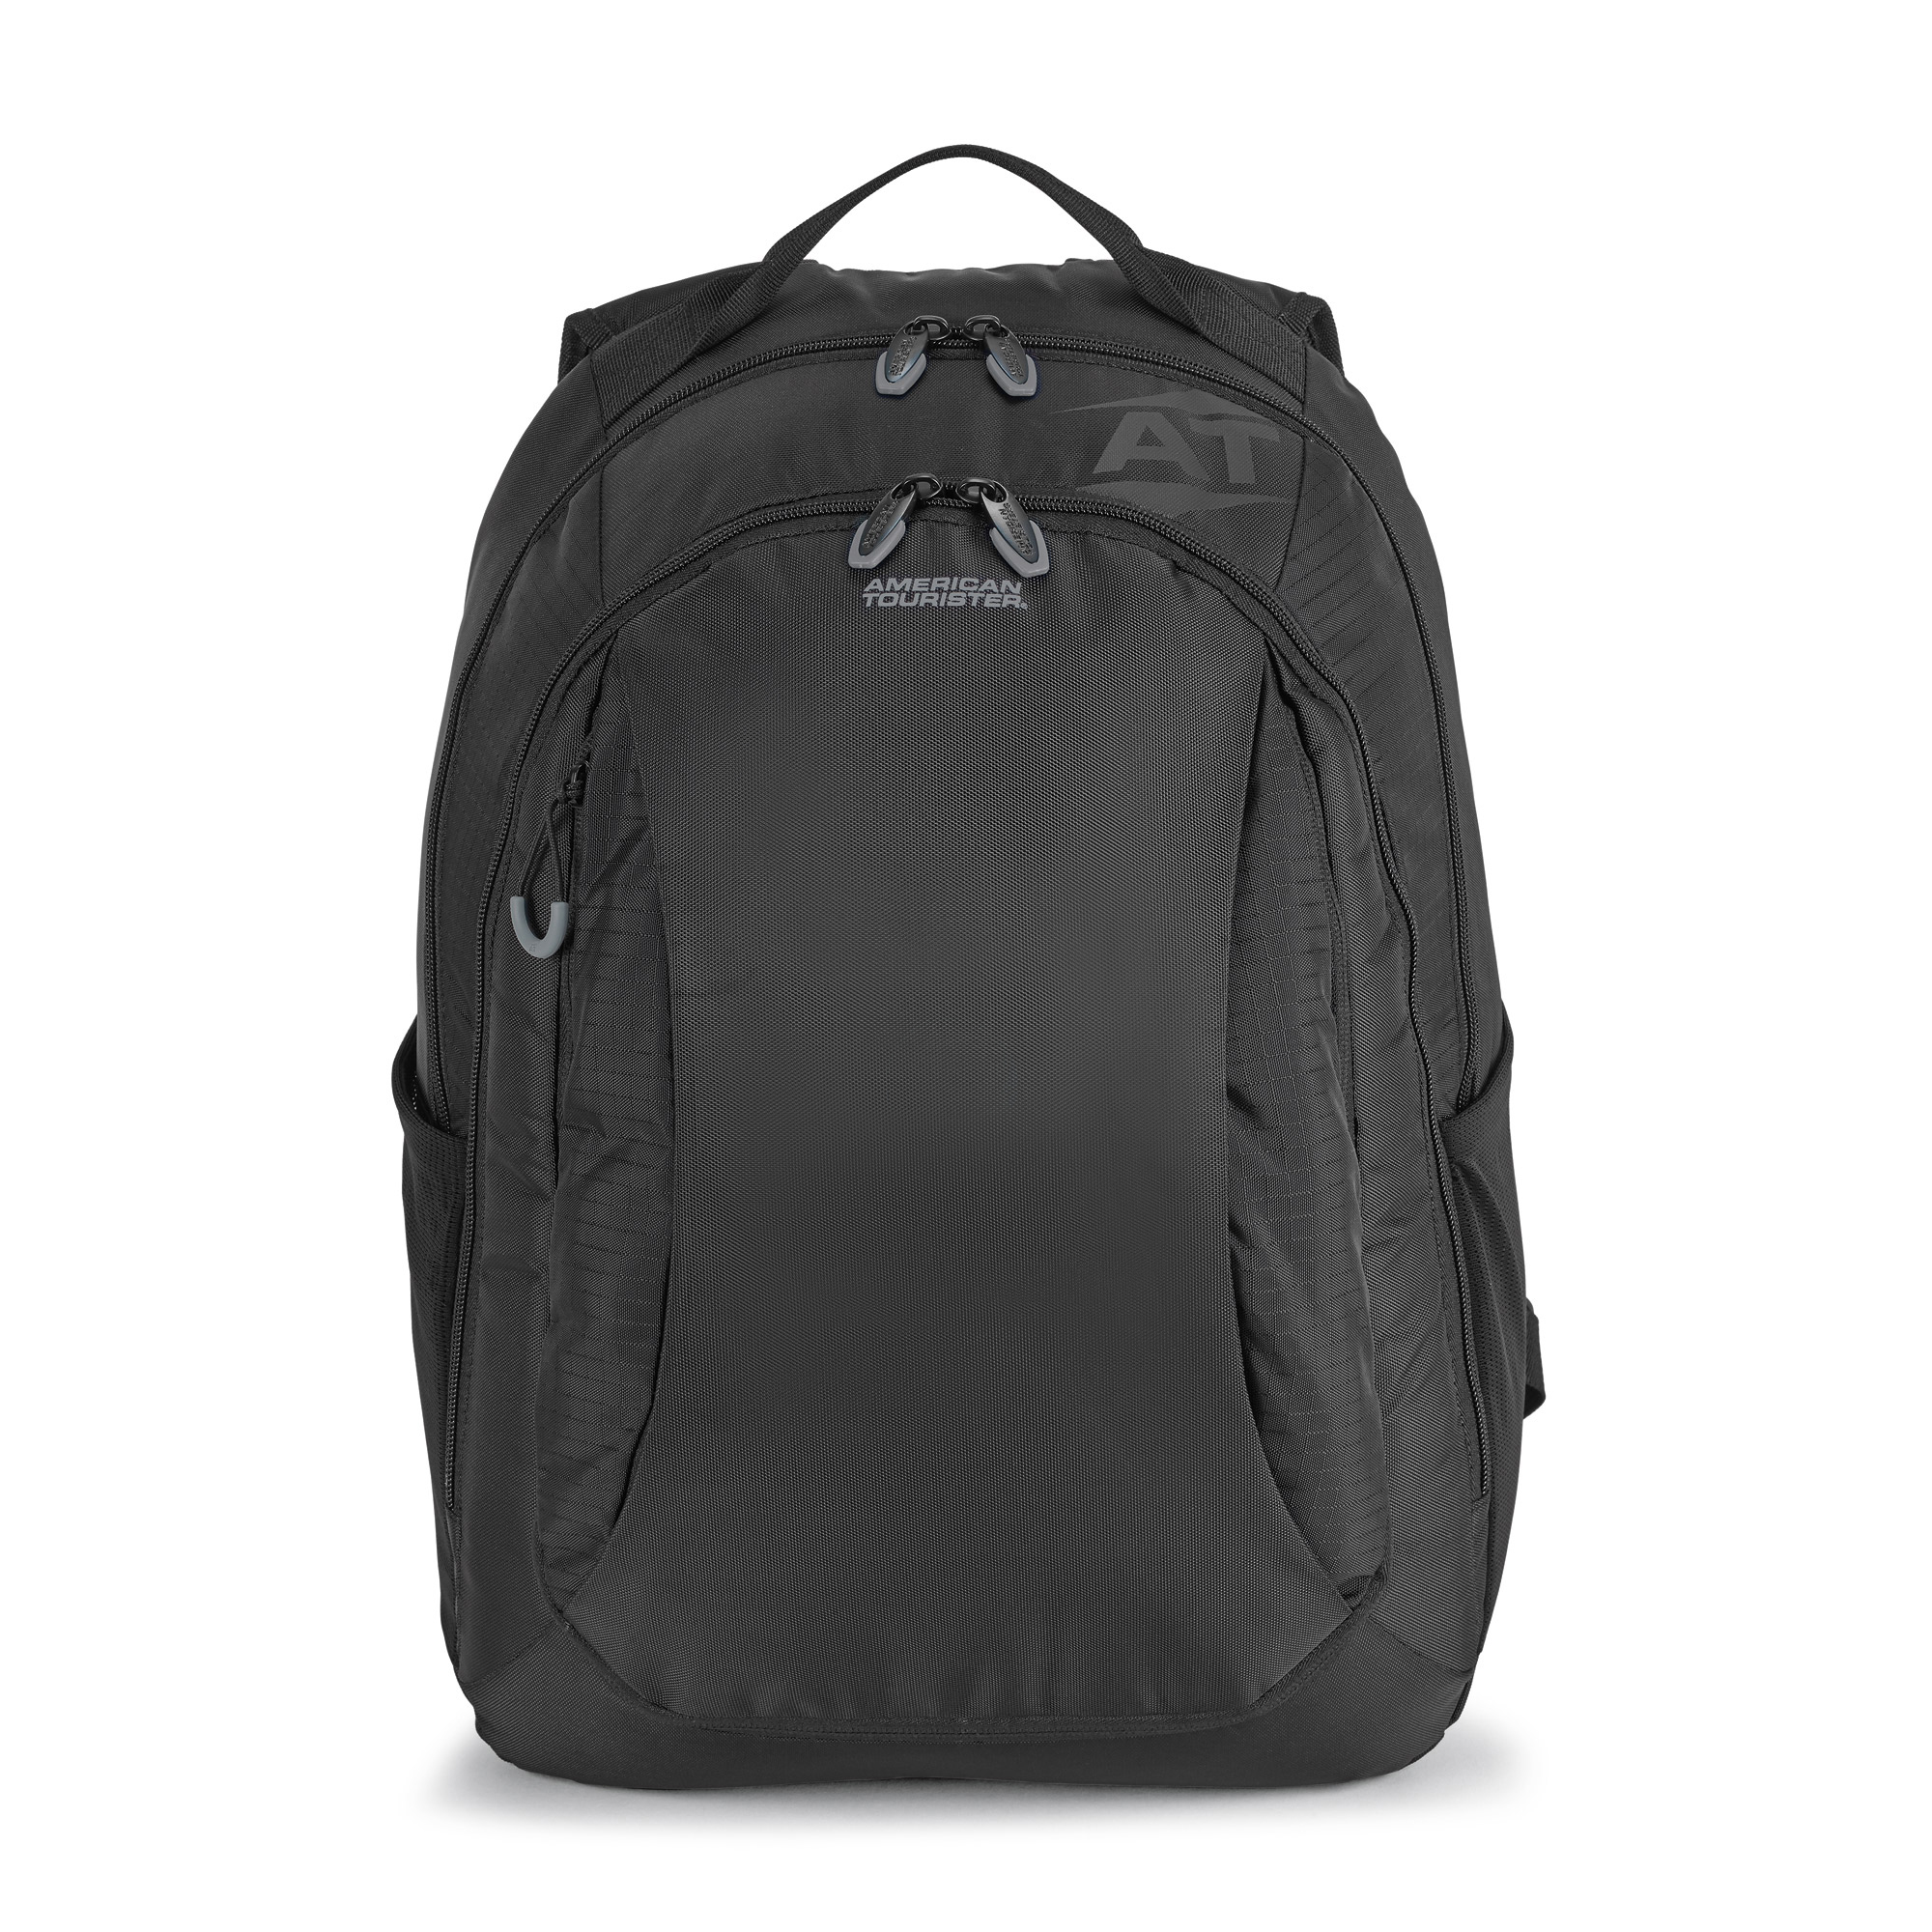 Similar styling to the Deluxe Backpack but with unique features.